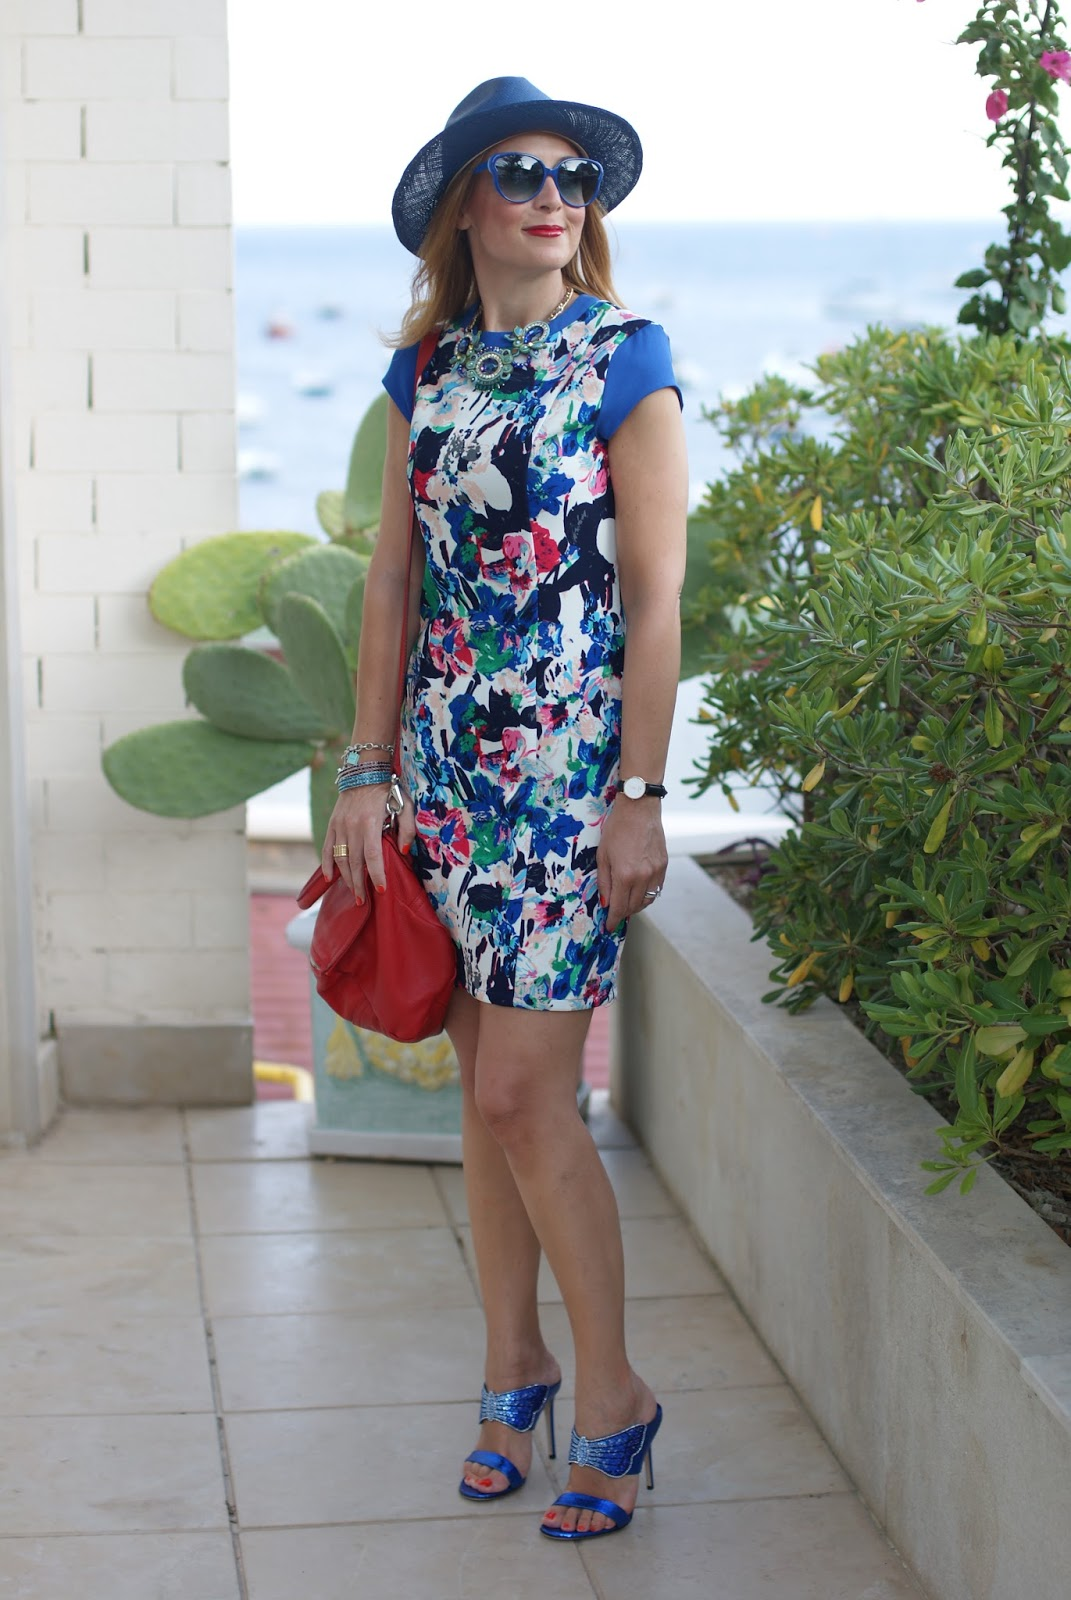 e2e85d181f29 Happy Barcelona style with Mismash and glamour with my Le Silla heels